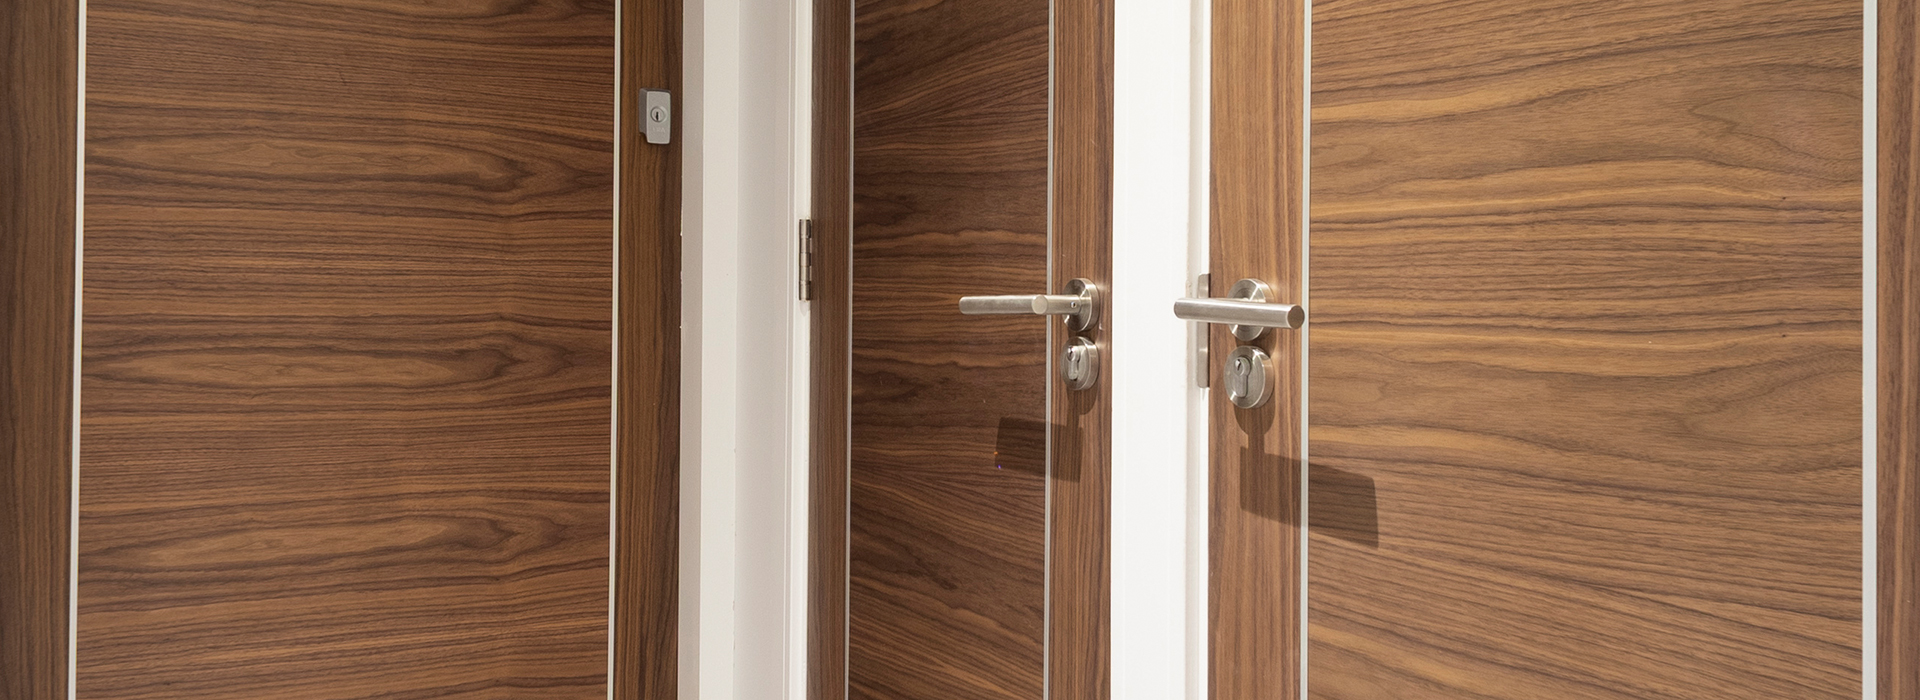 Walnut apartment doors